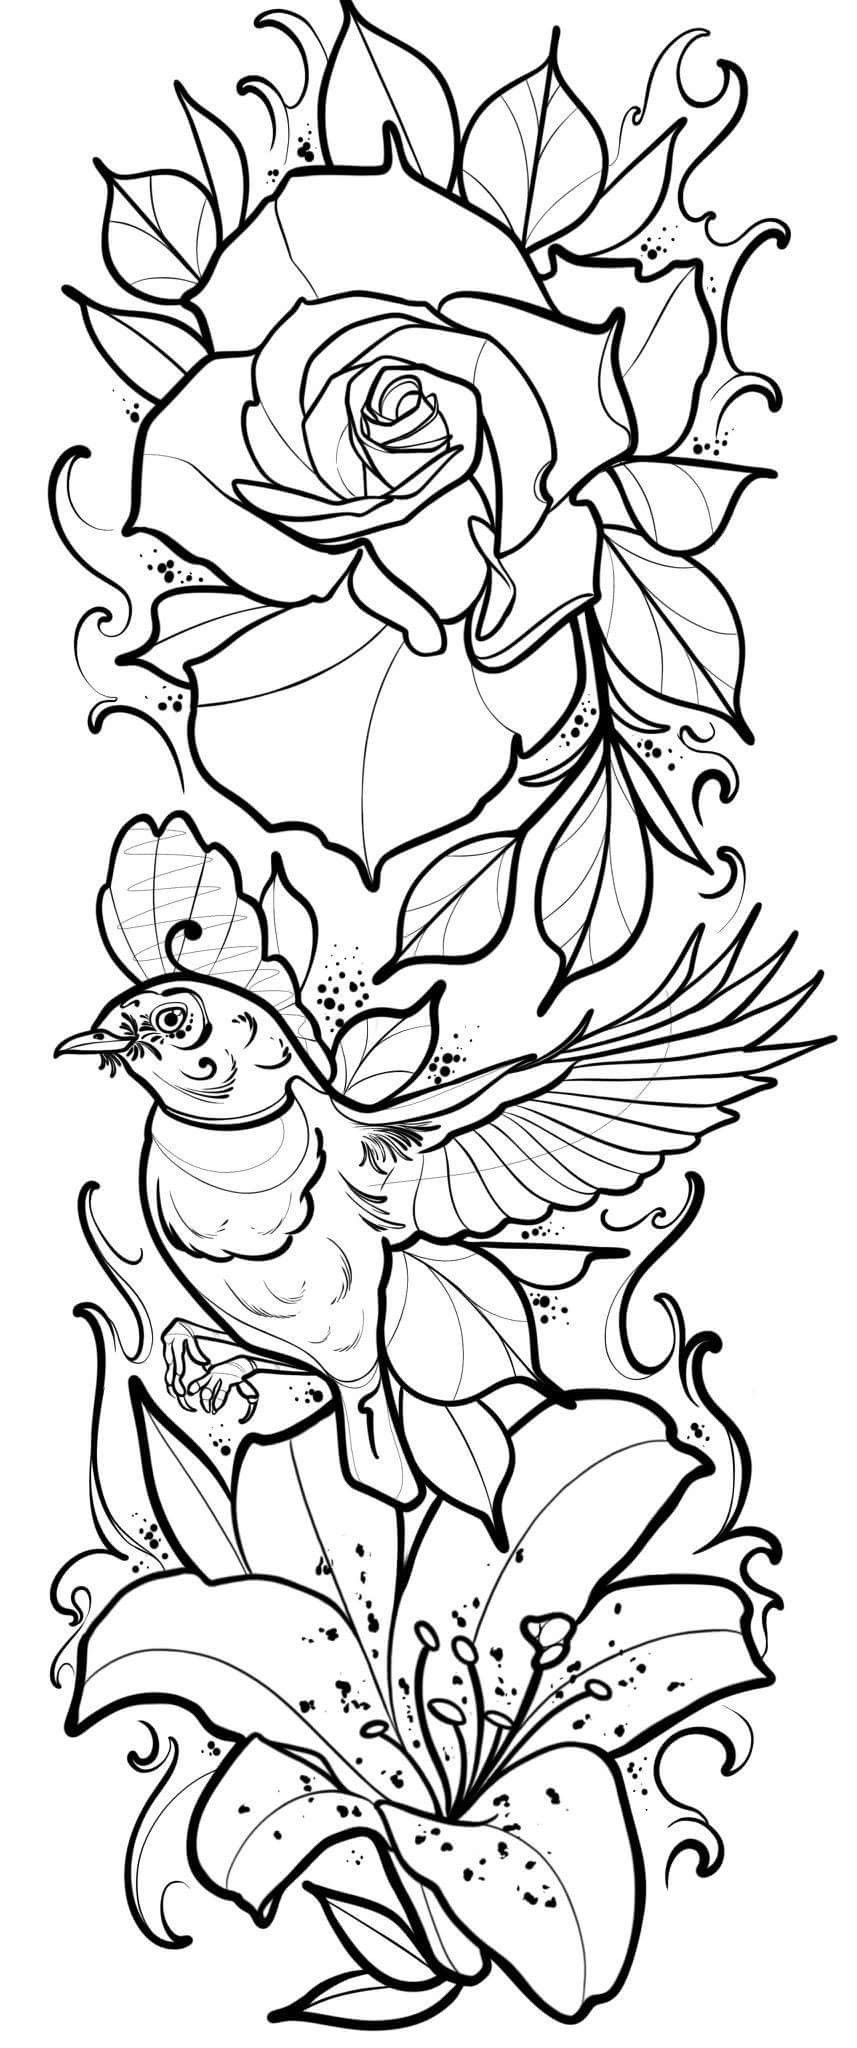 chicano art coloring pages 17 best images about coloriage personnages on pinterest coloring chicano art pages